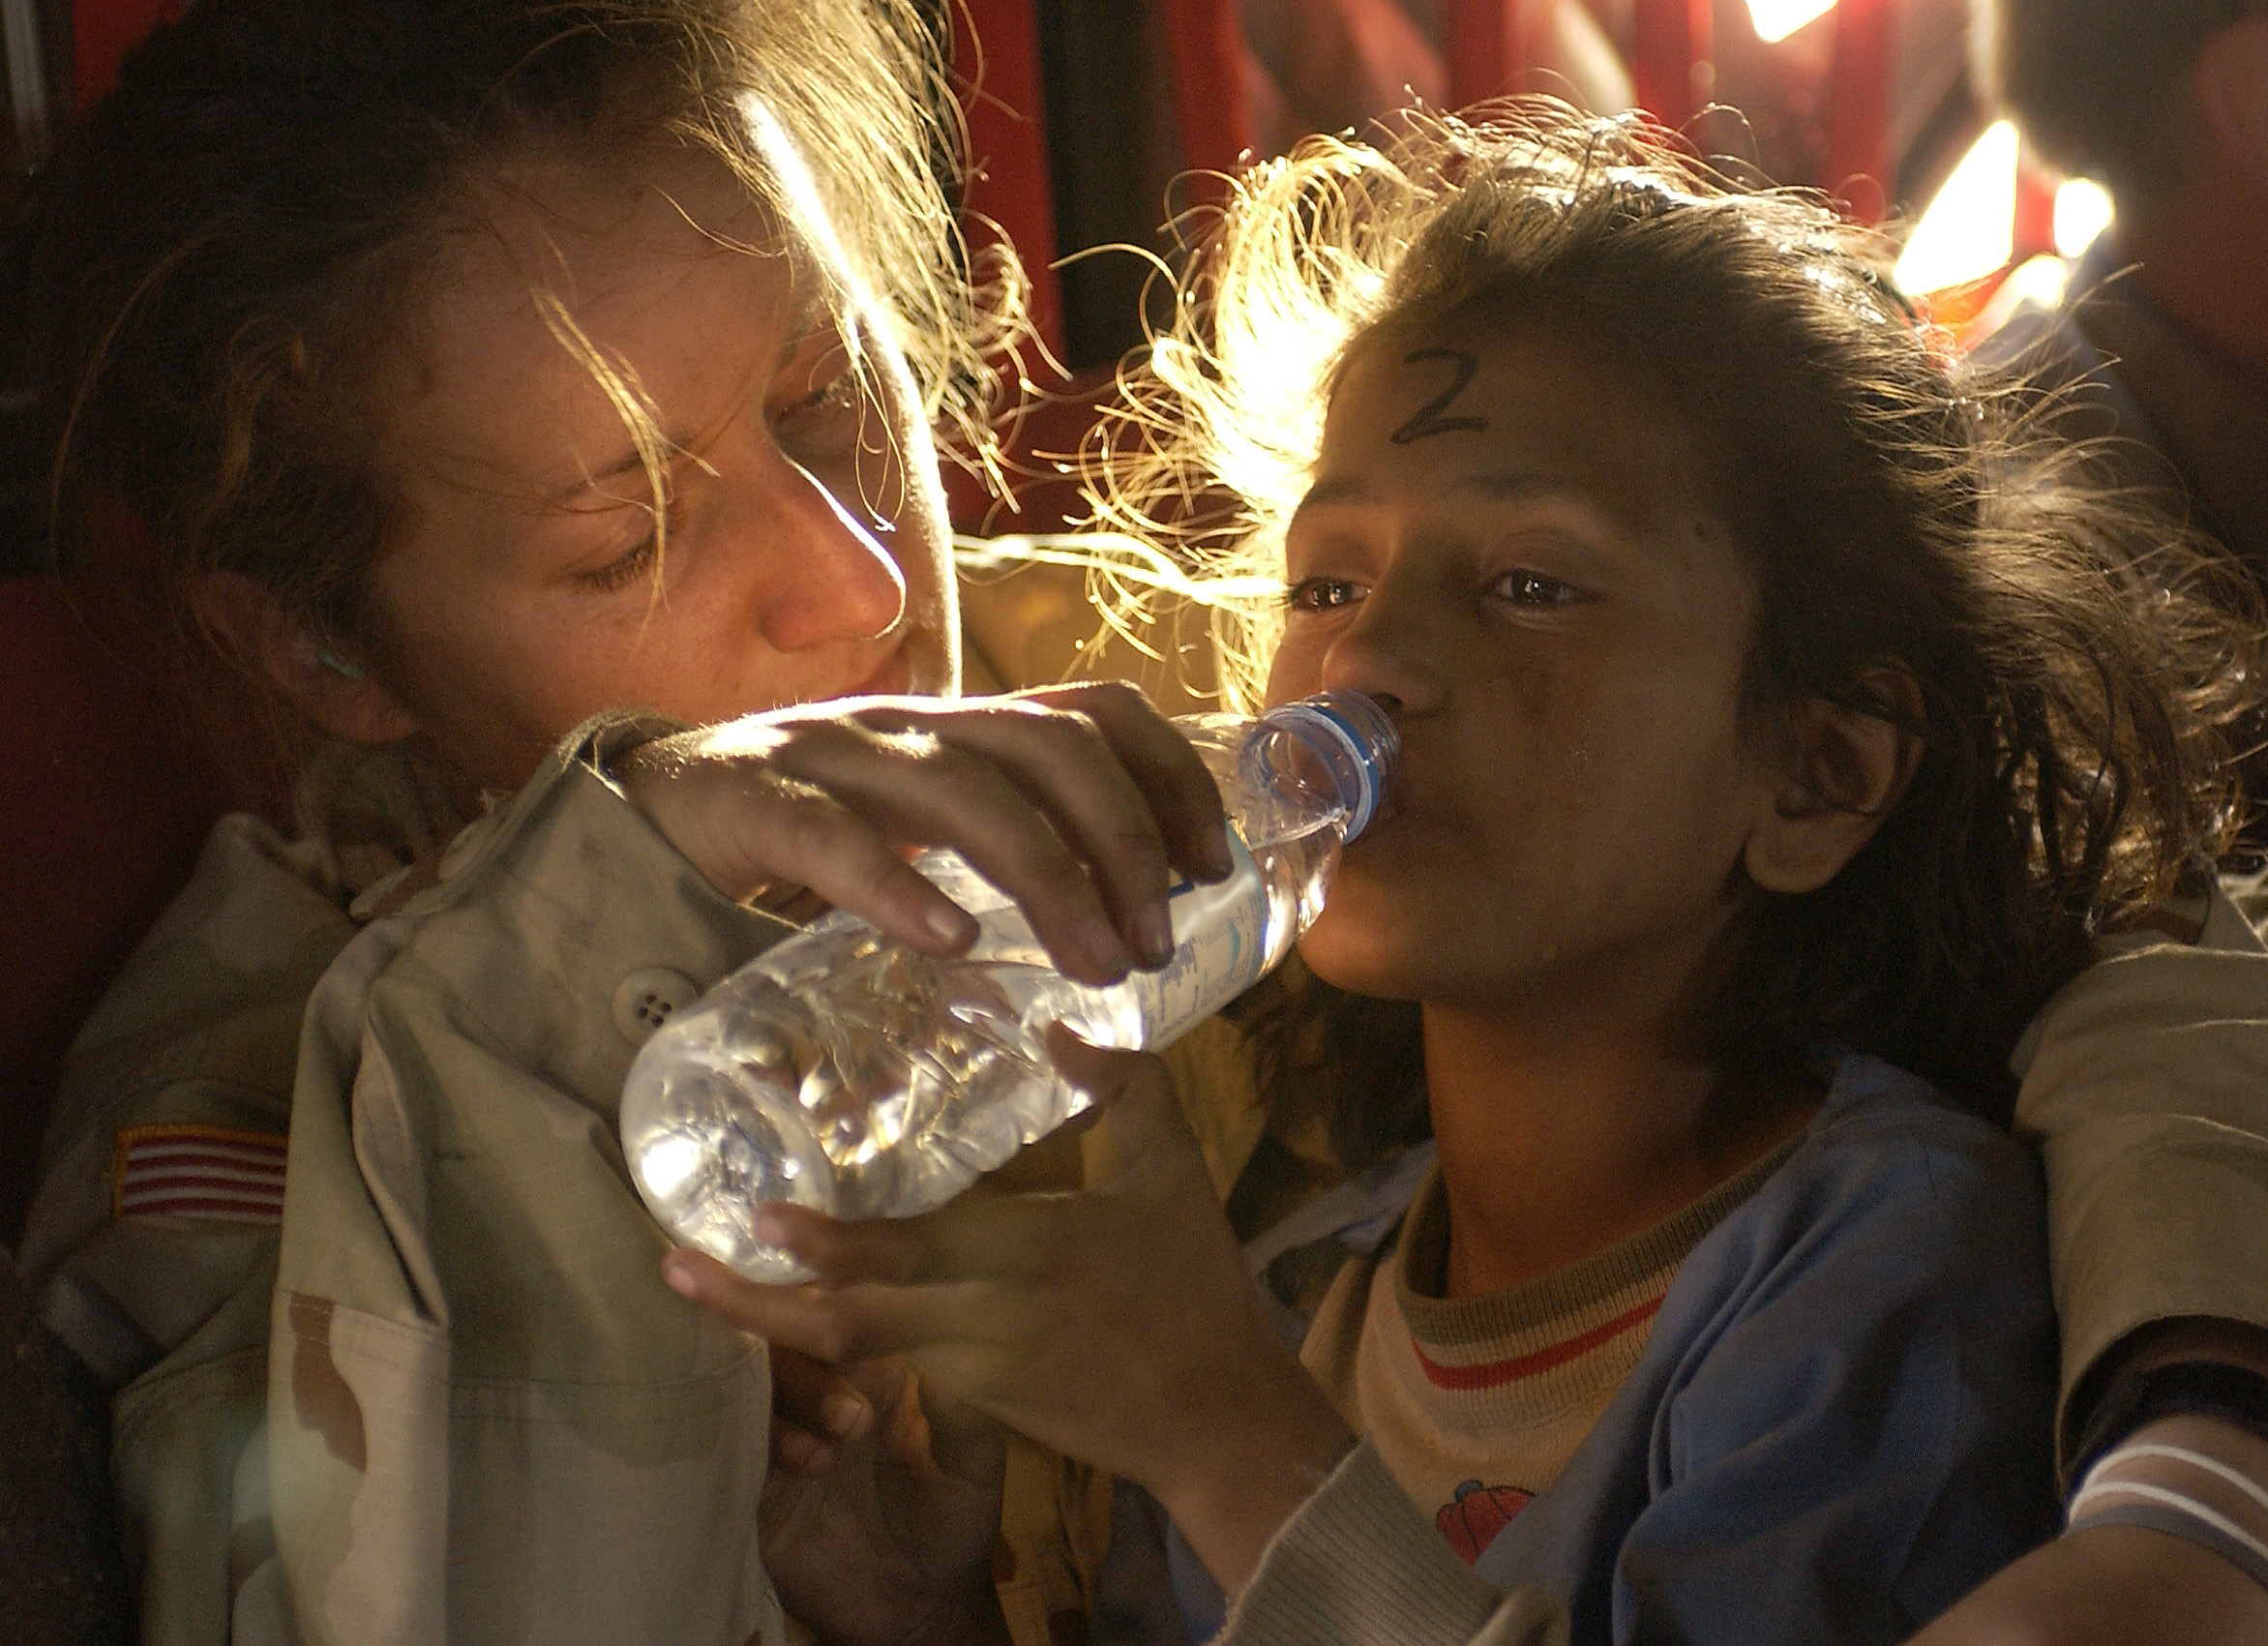 An American solider provides water to a Pakistani girl, October 2005